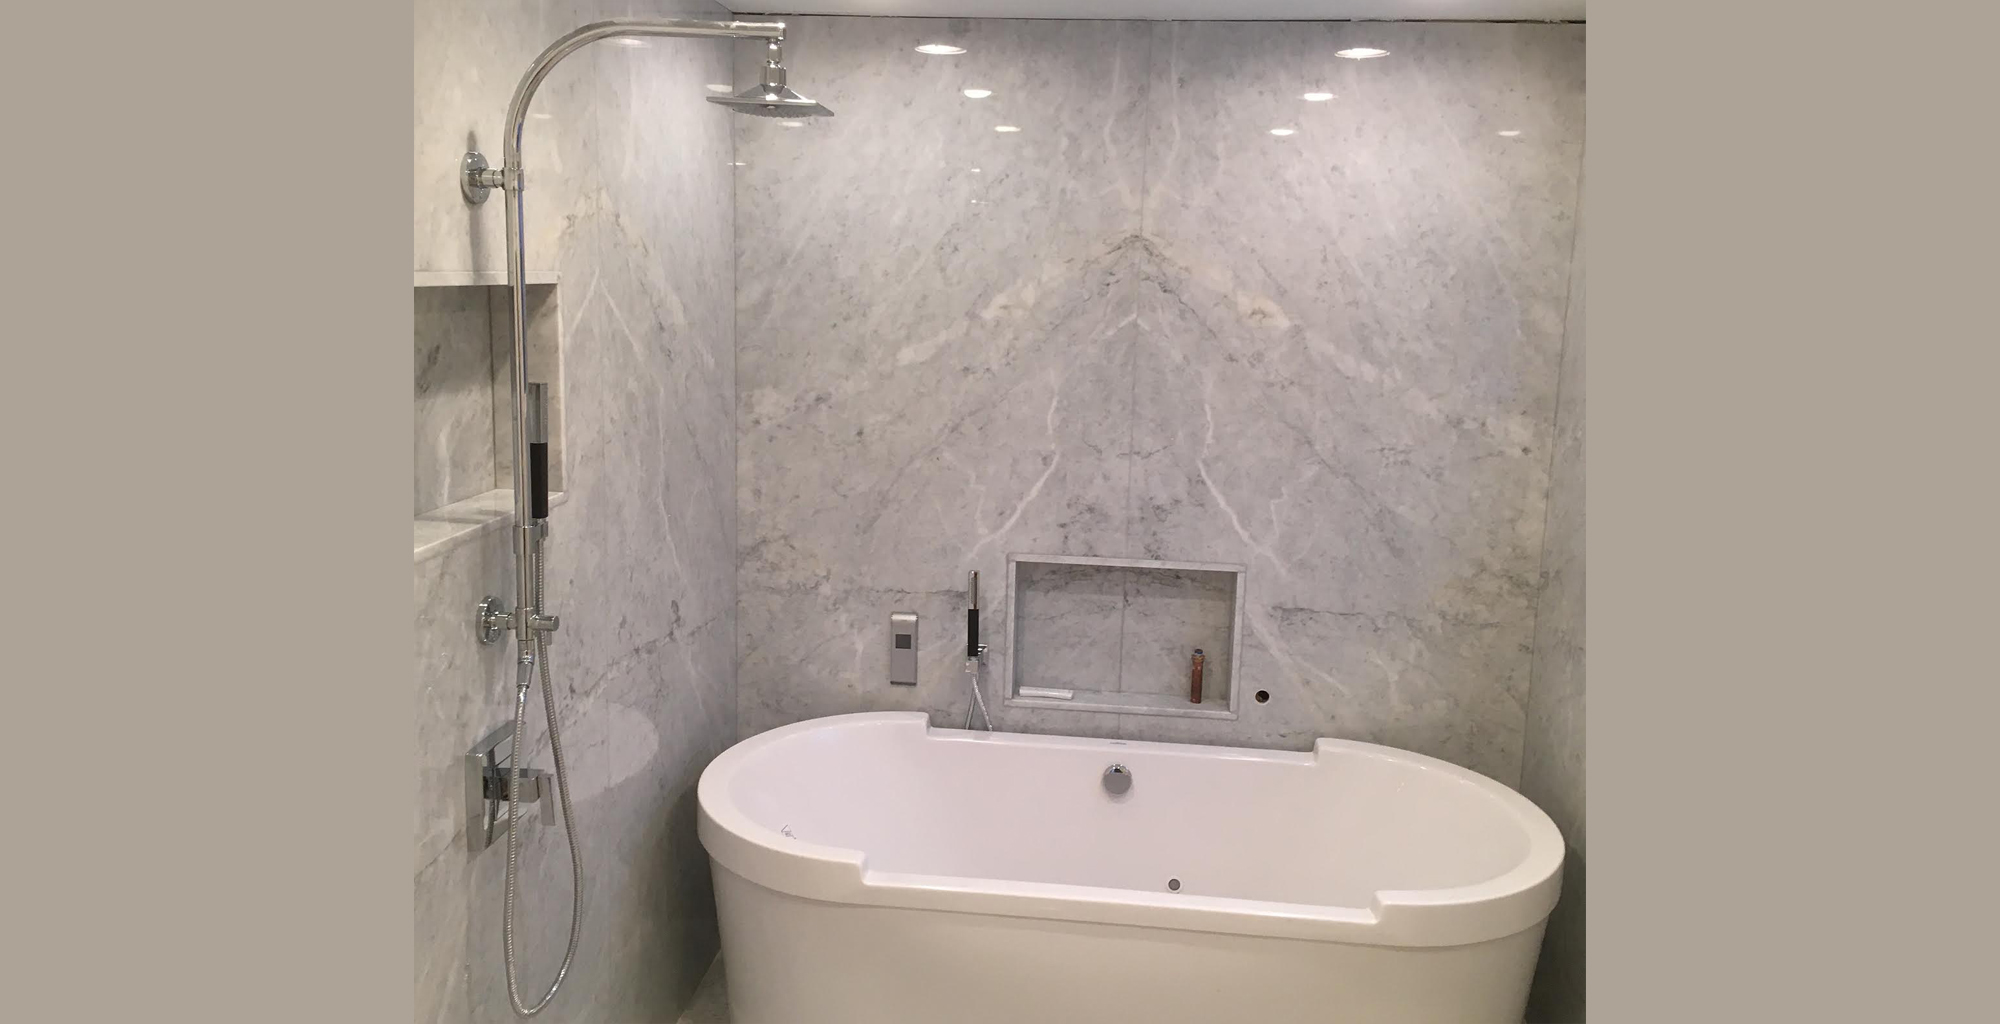 Week 6 bathroom renovation | Sam Kellogg